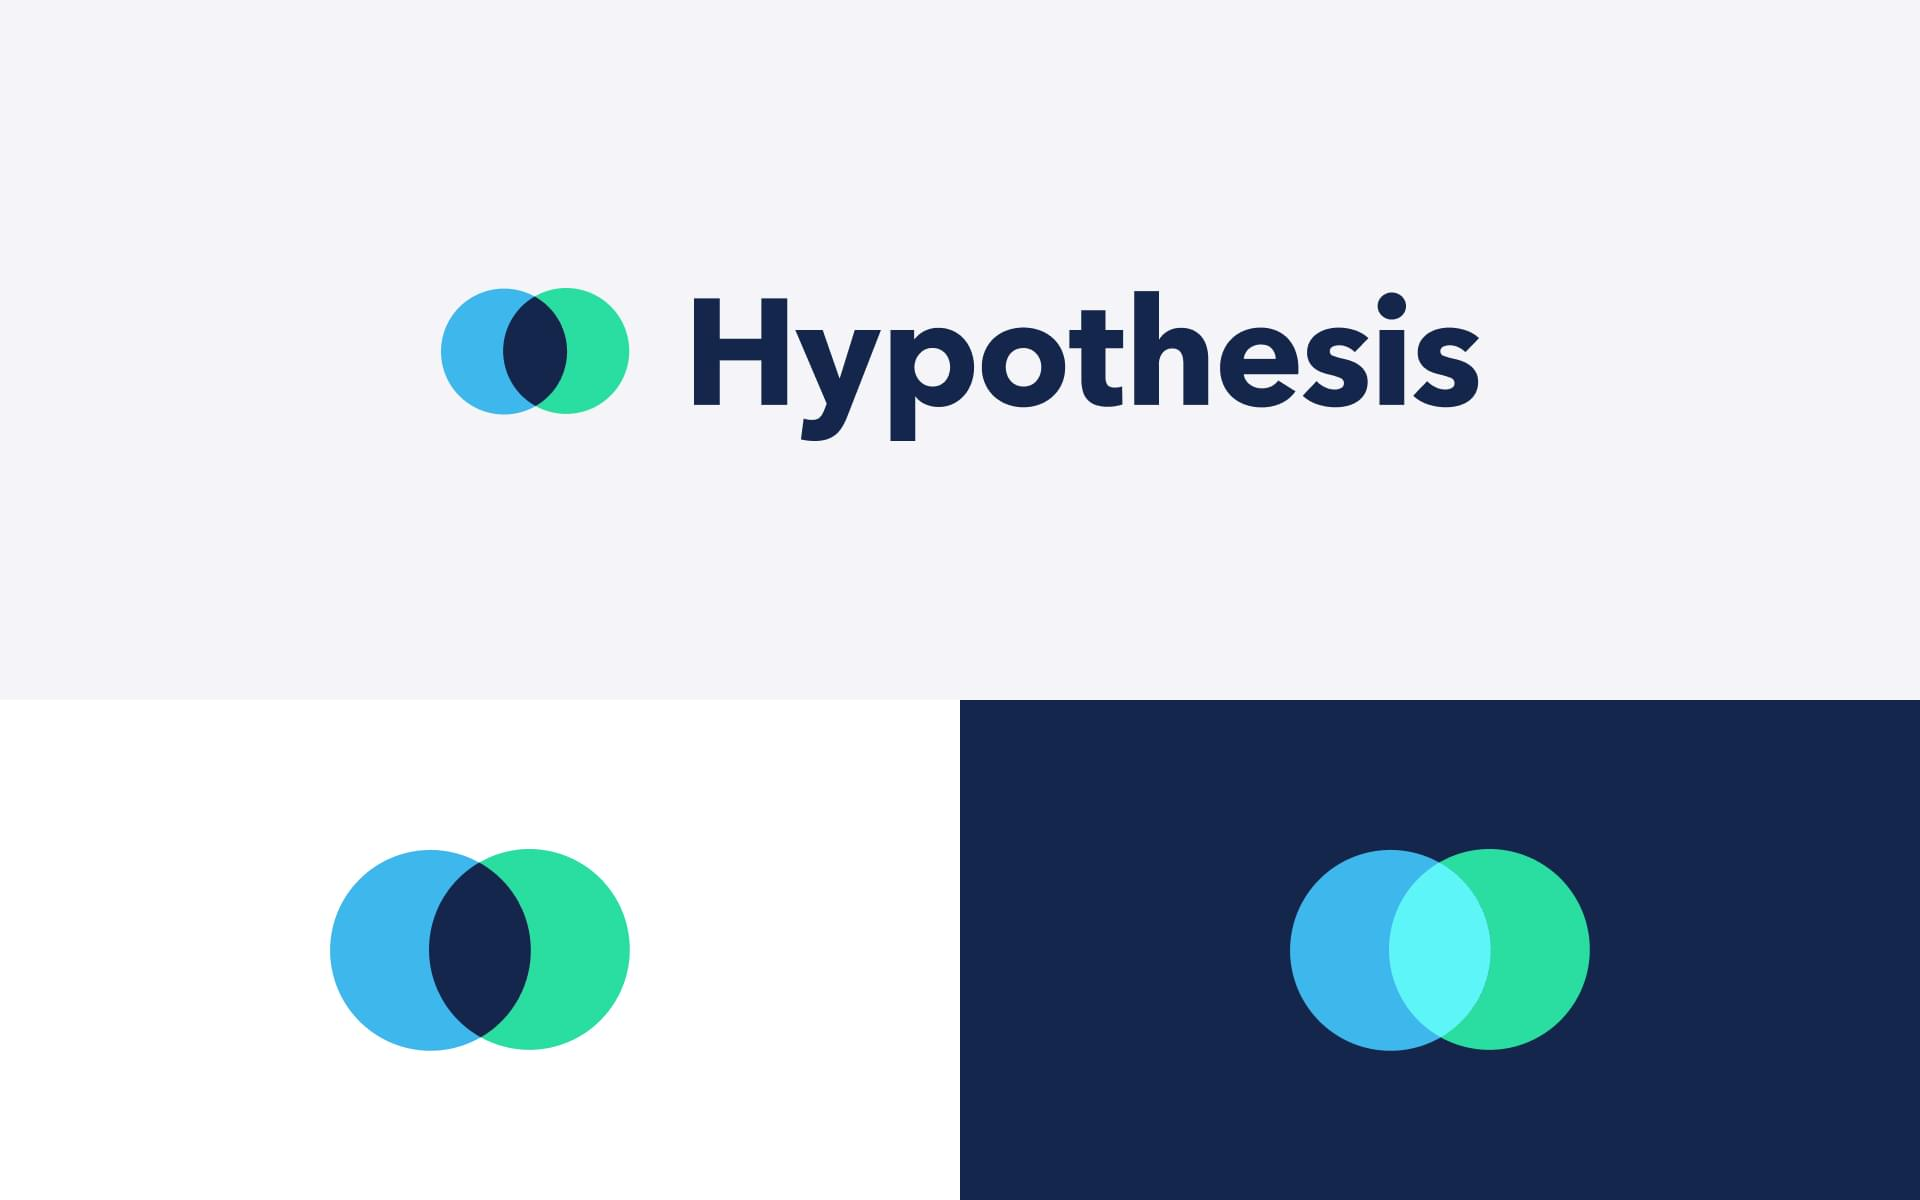 B2B SaaS logo design in different lockups and colorways